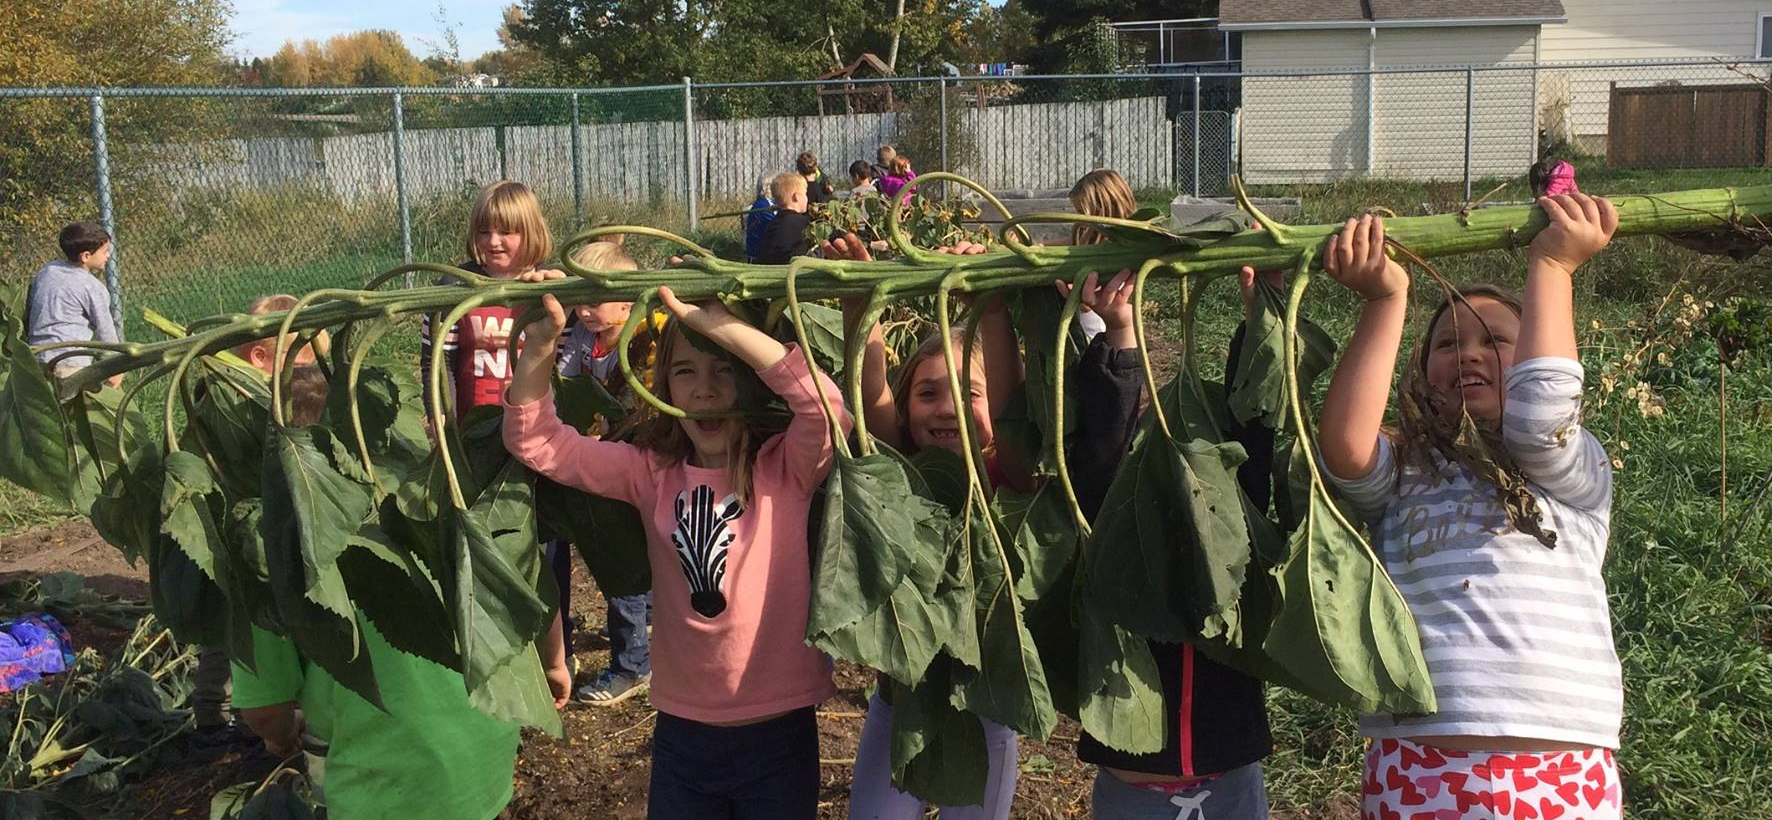 Media Release: Government, Grocers, and Grassroots Invest in Canada's Farm to School Program